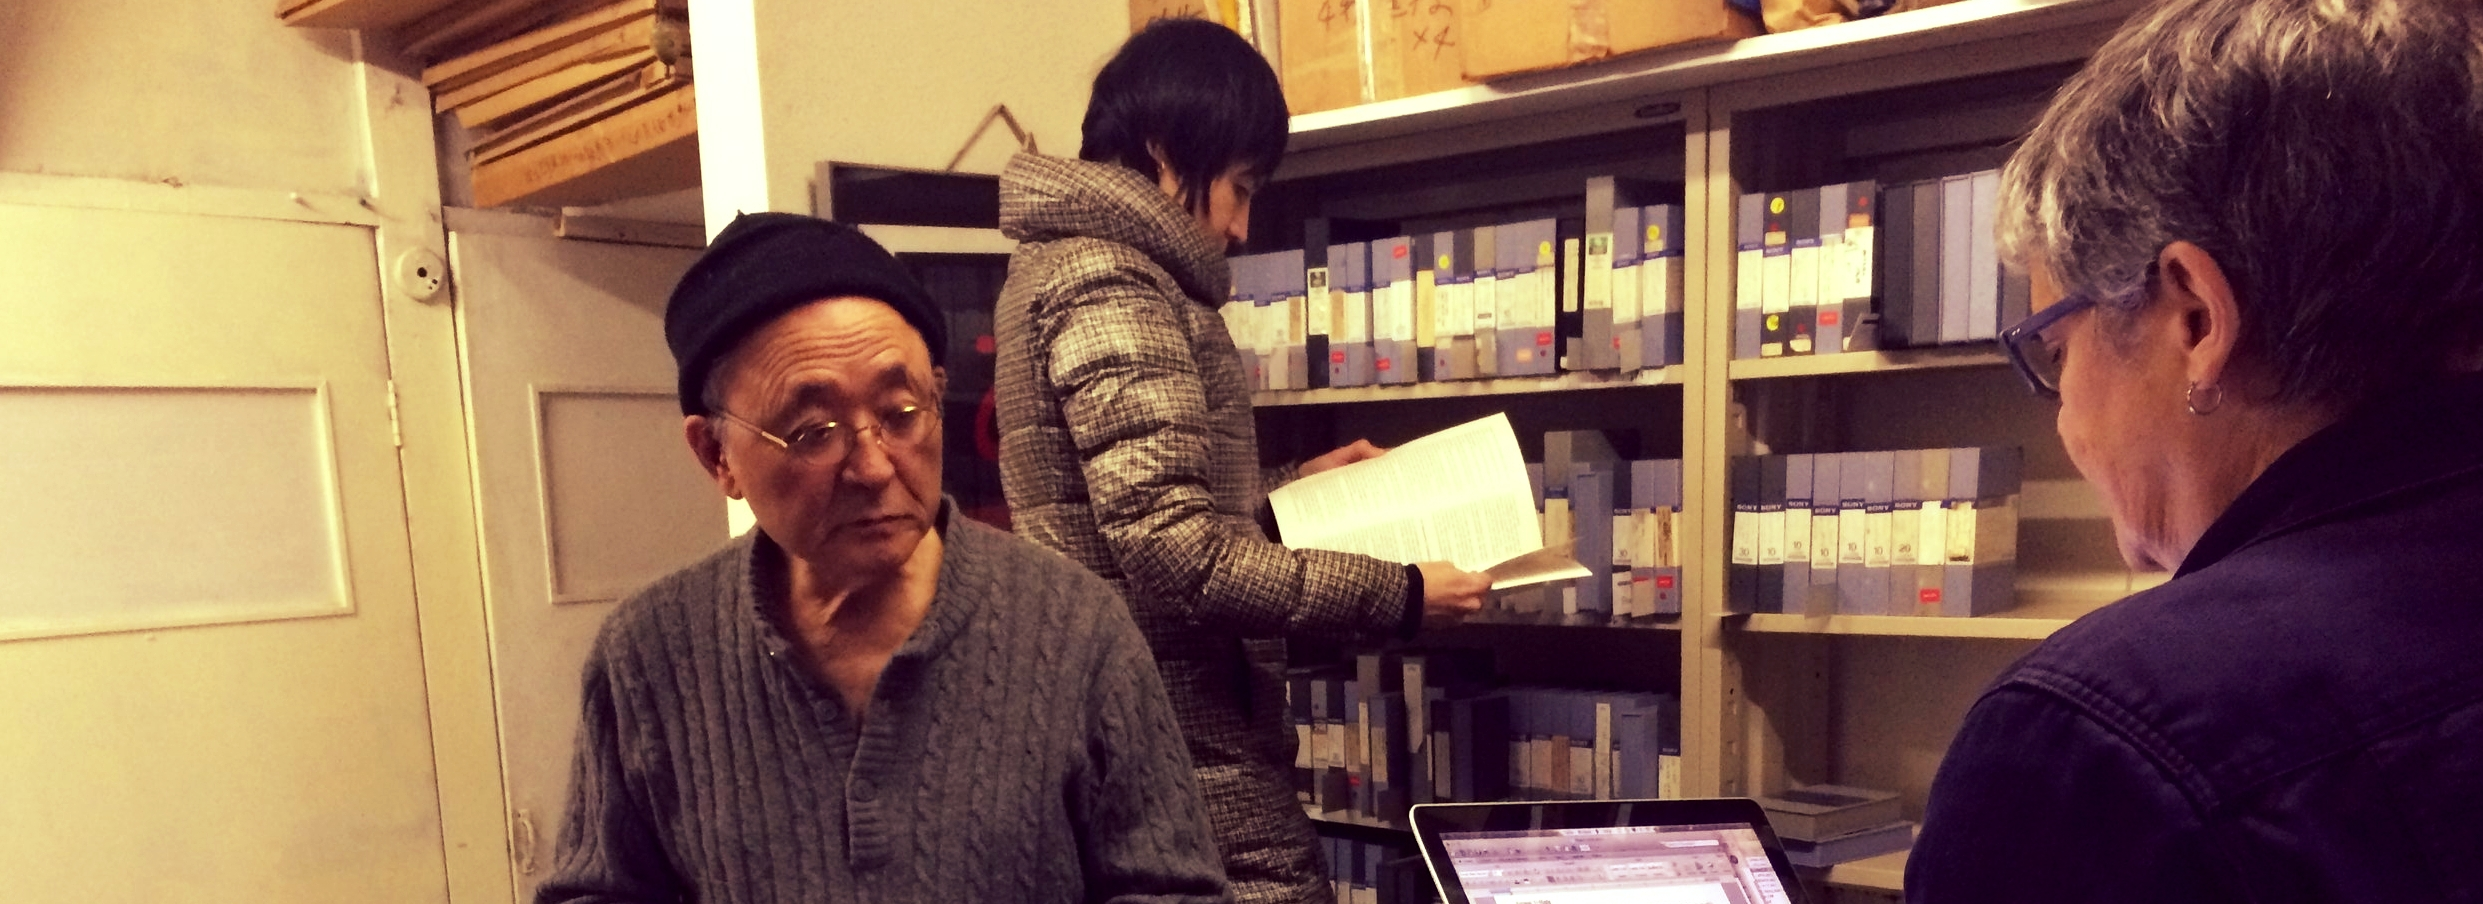 Collection Survey at artist Iimura Takahiko's Tokyo Studio with Mona Jimenez (right) and Laurie Duke (middle). November, 2016.